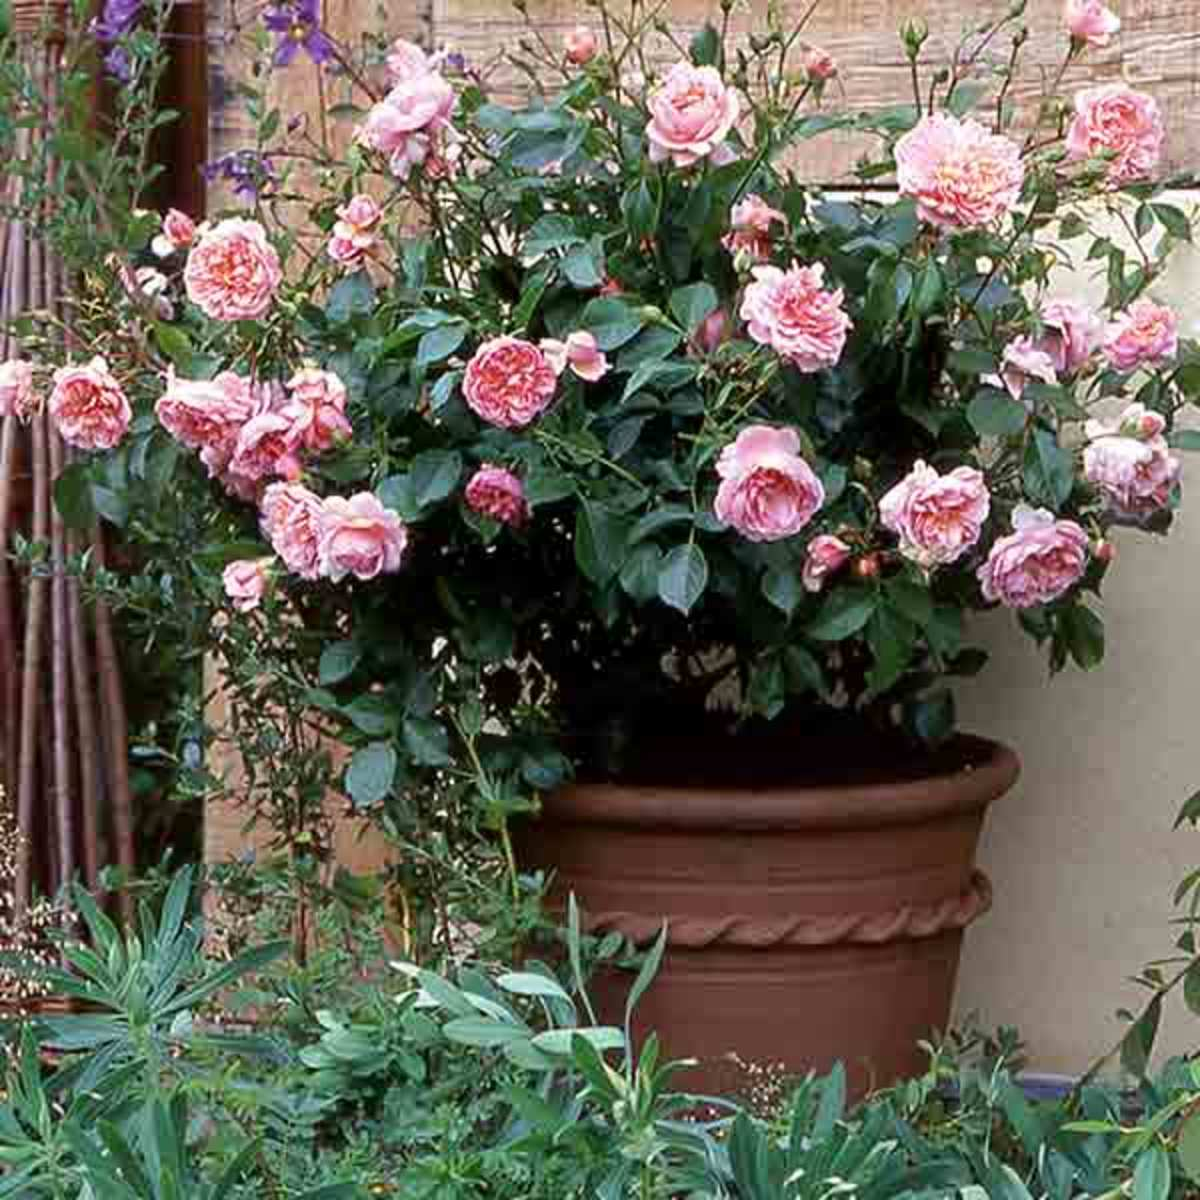 A rose bush thriving in a large container.